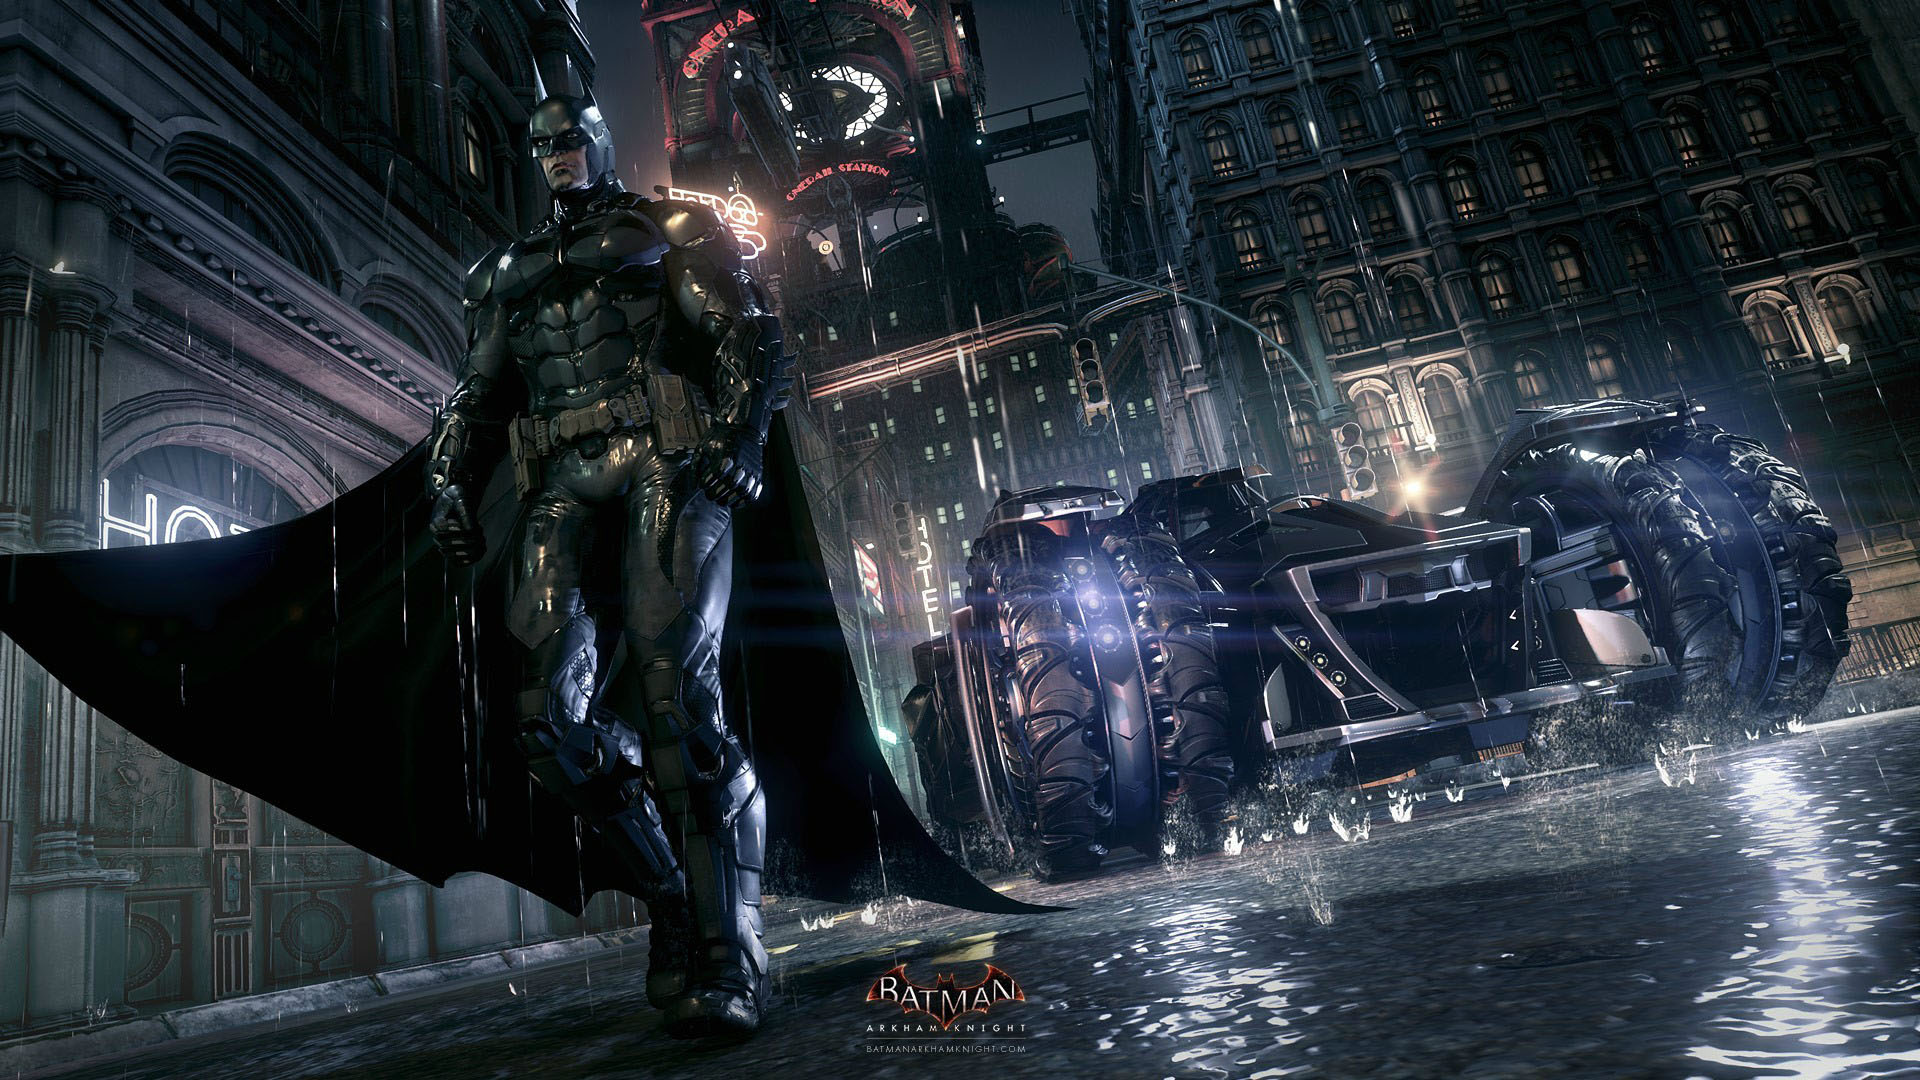 Batman Arkham Knight HD Wallpaper   Stylish HD Wallpapers 1920x1080